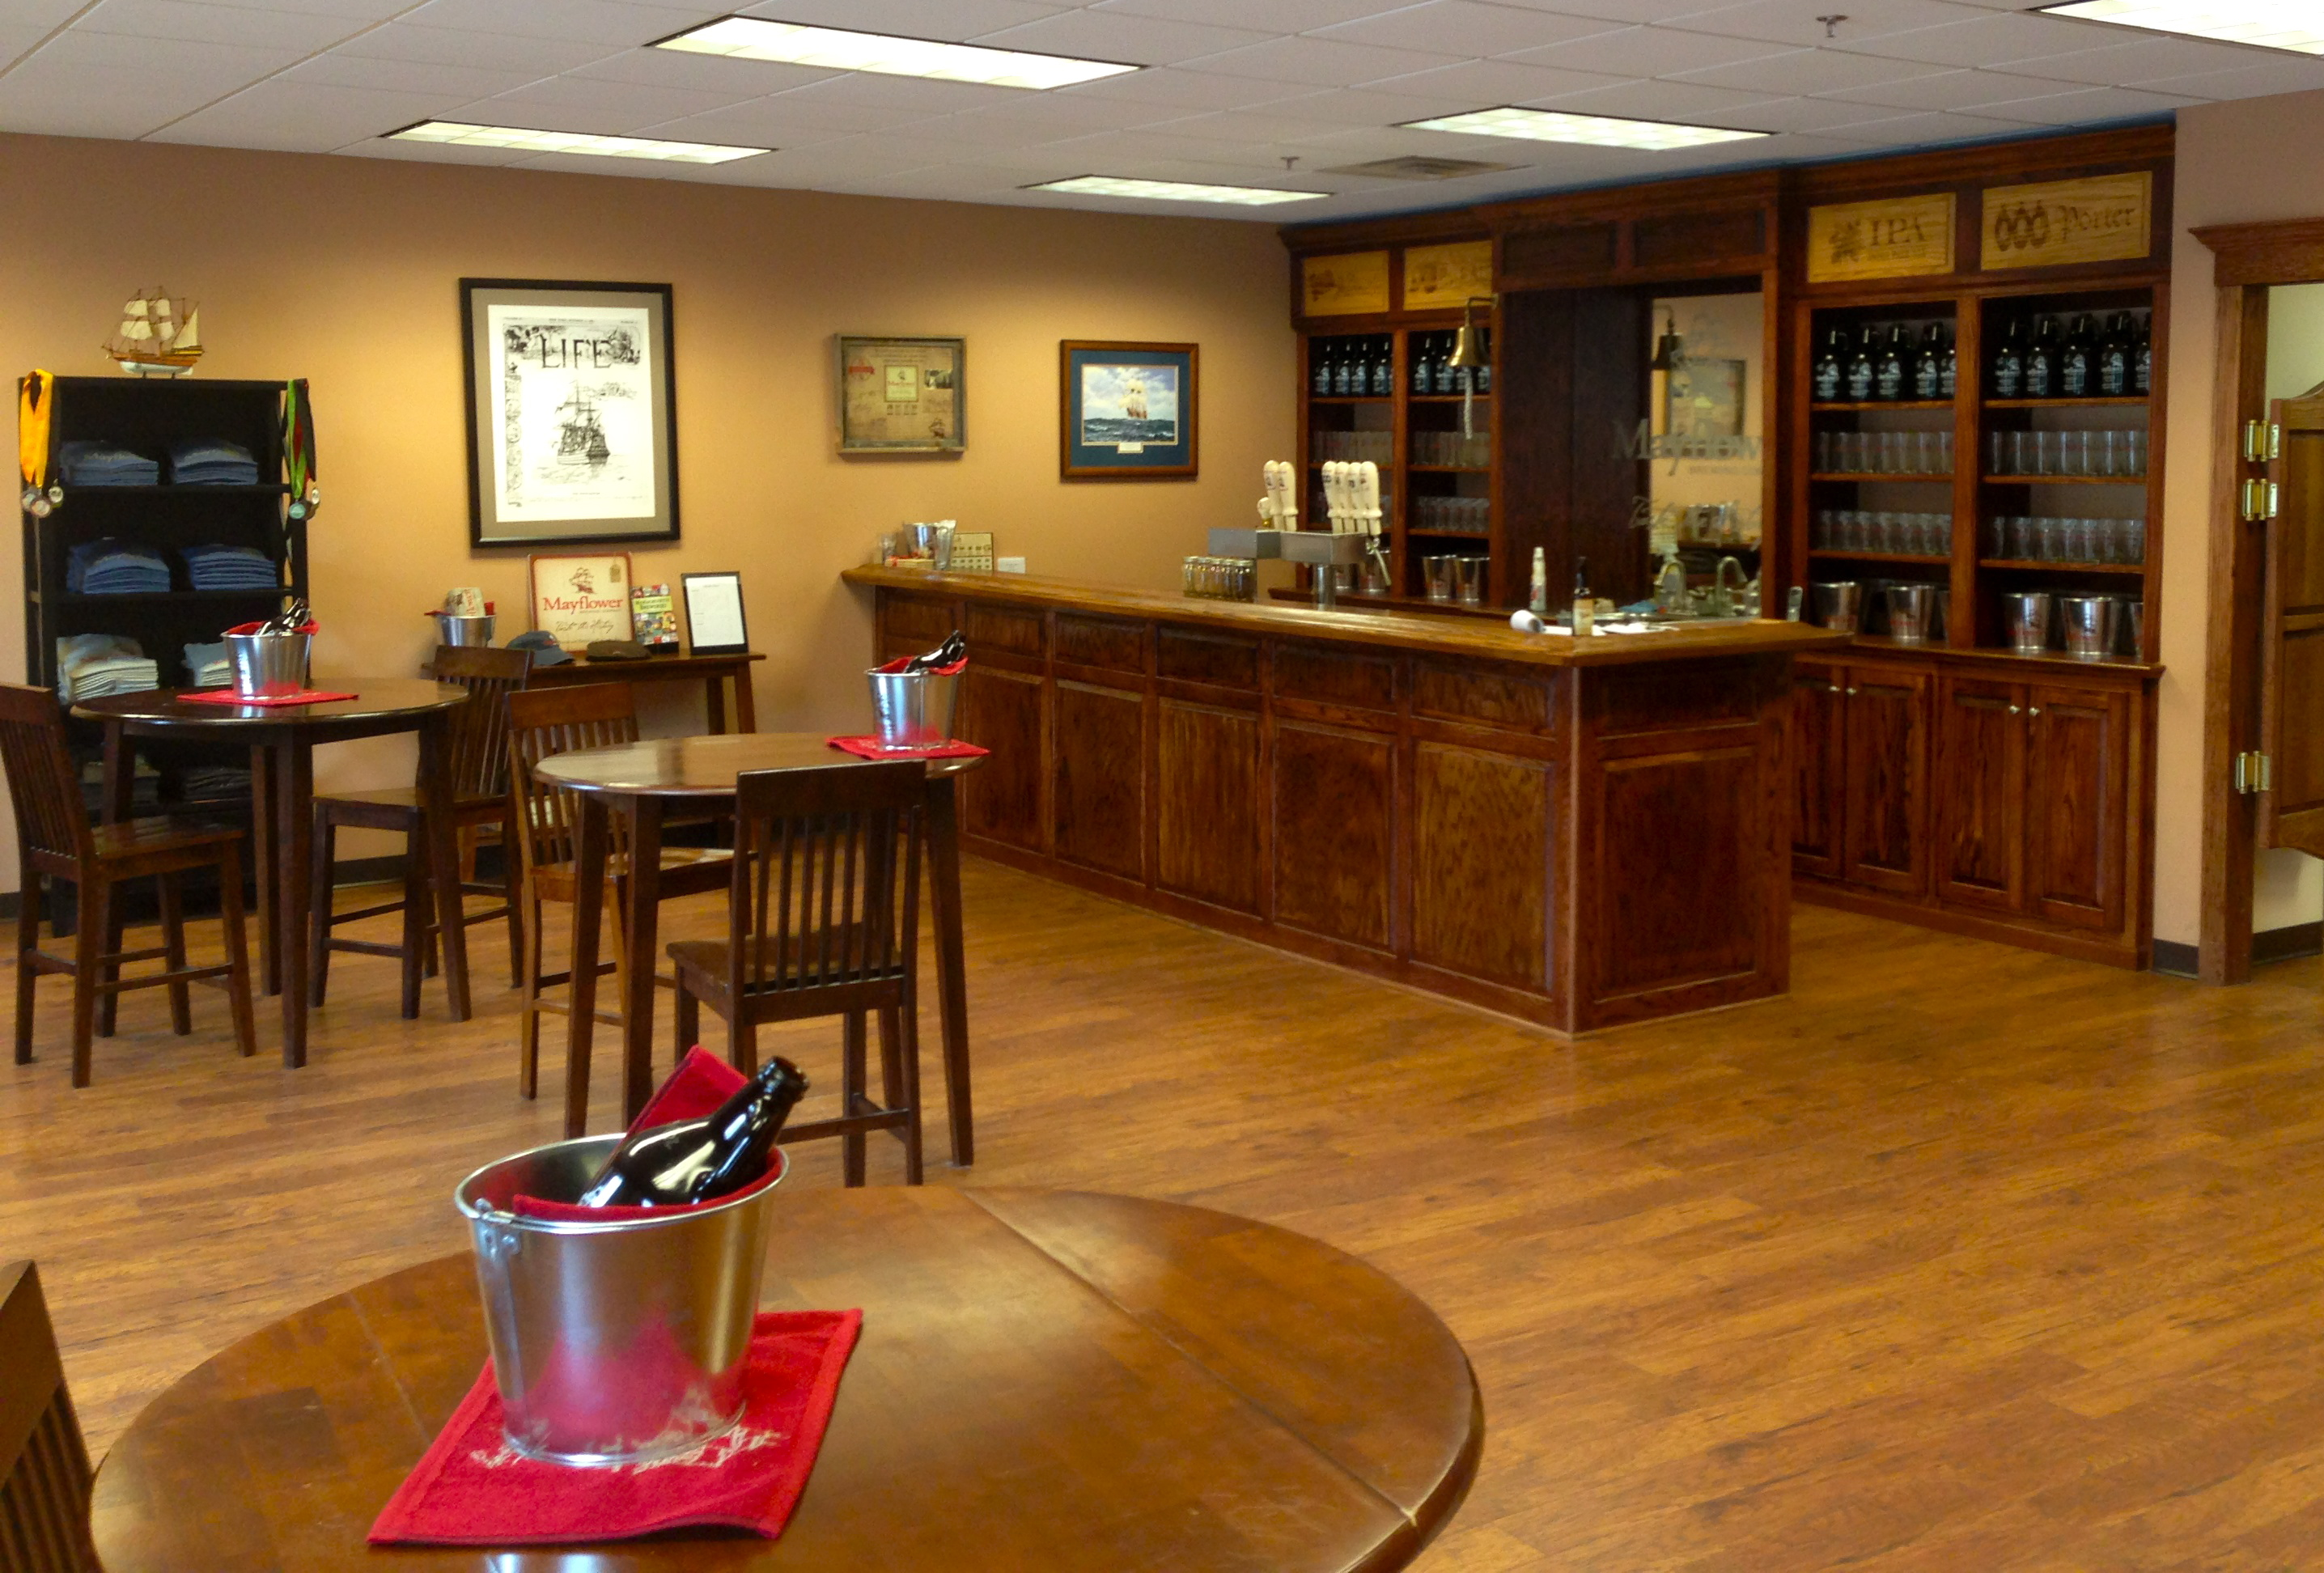 The Tasting Room At Mayflower Brewing Company